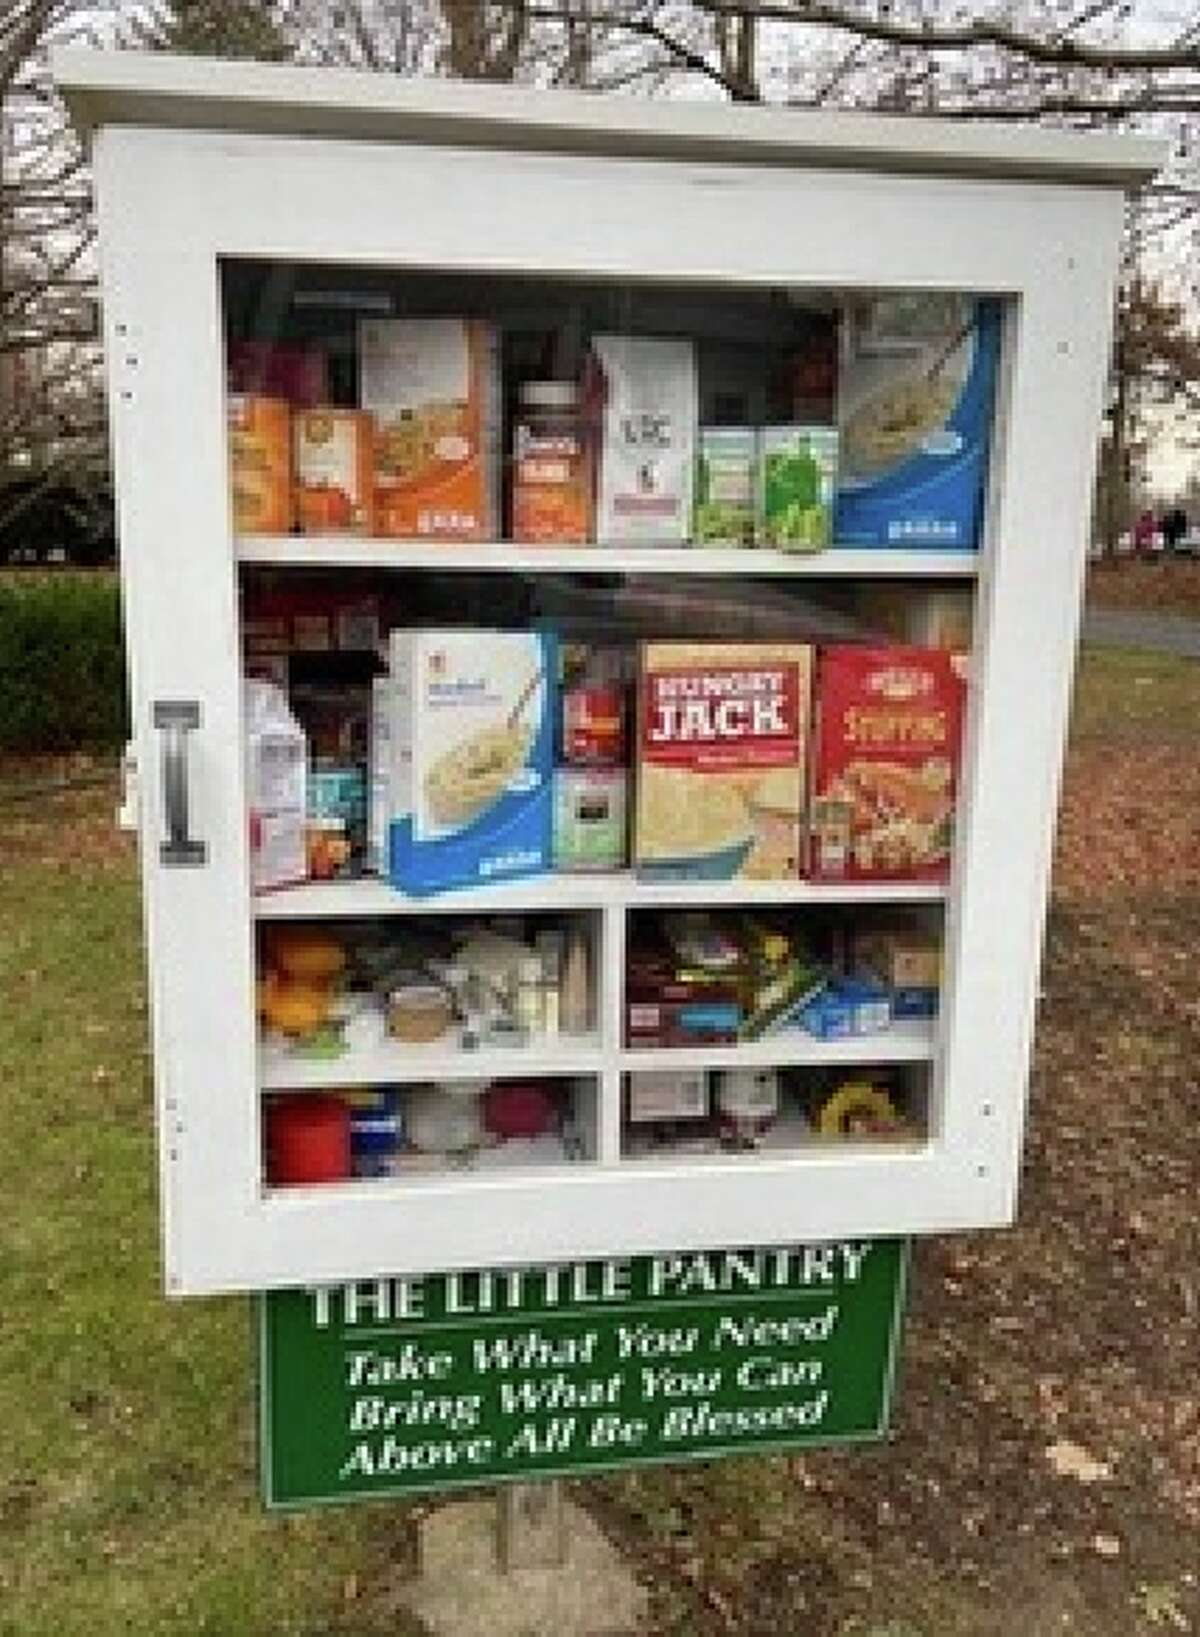 With the help of community partners, Weiner will use her grant to establish more Little Pantry posts like this one in Fairfield County